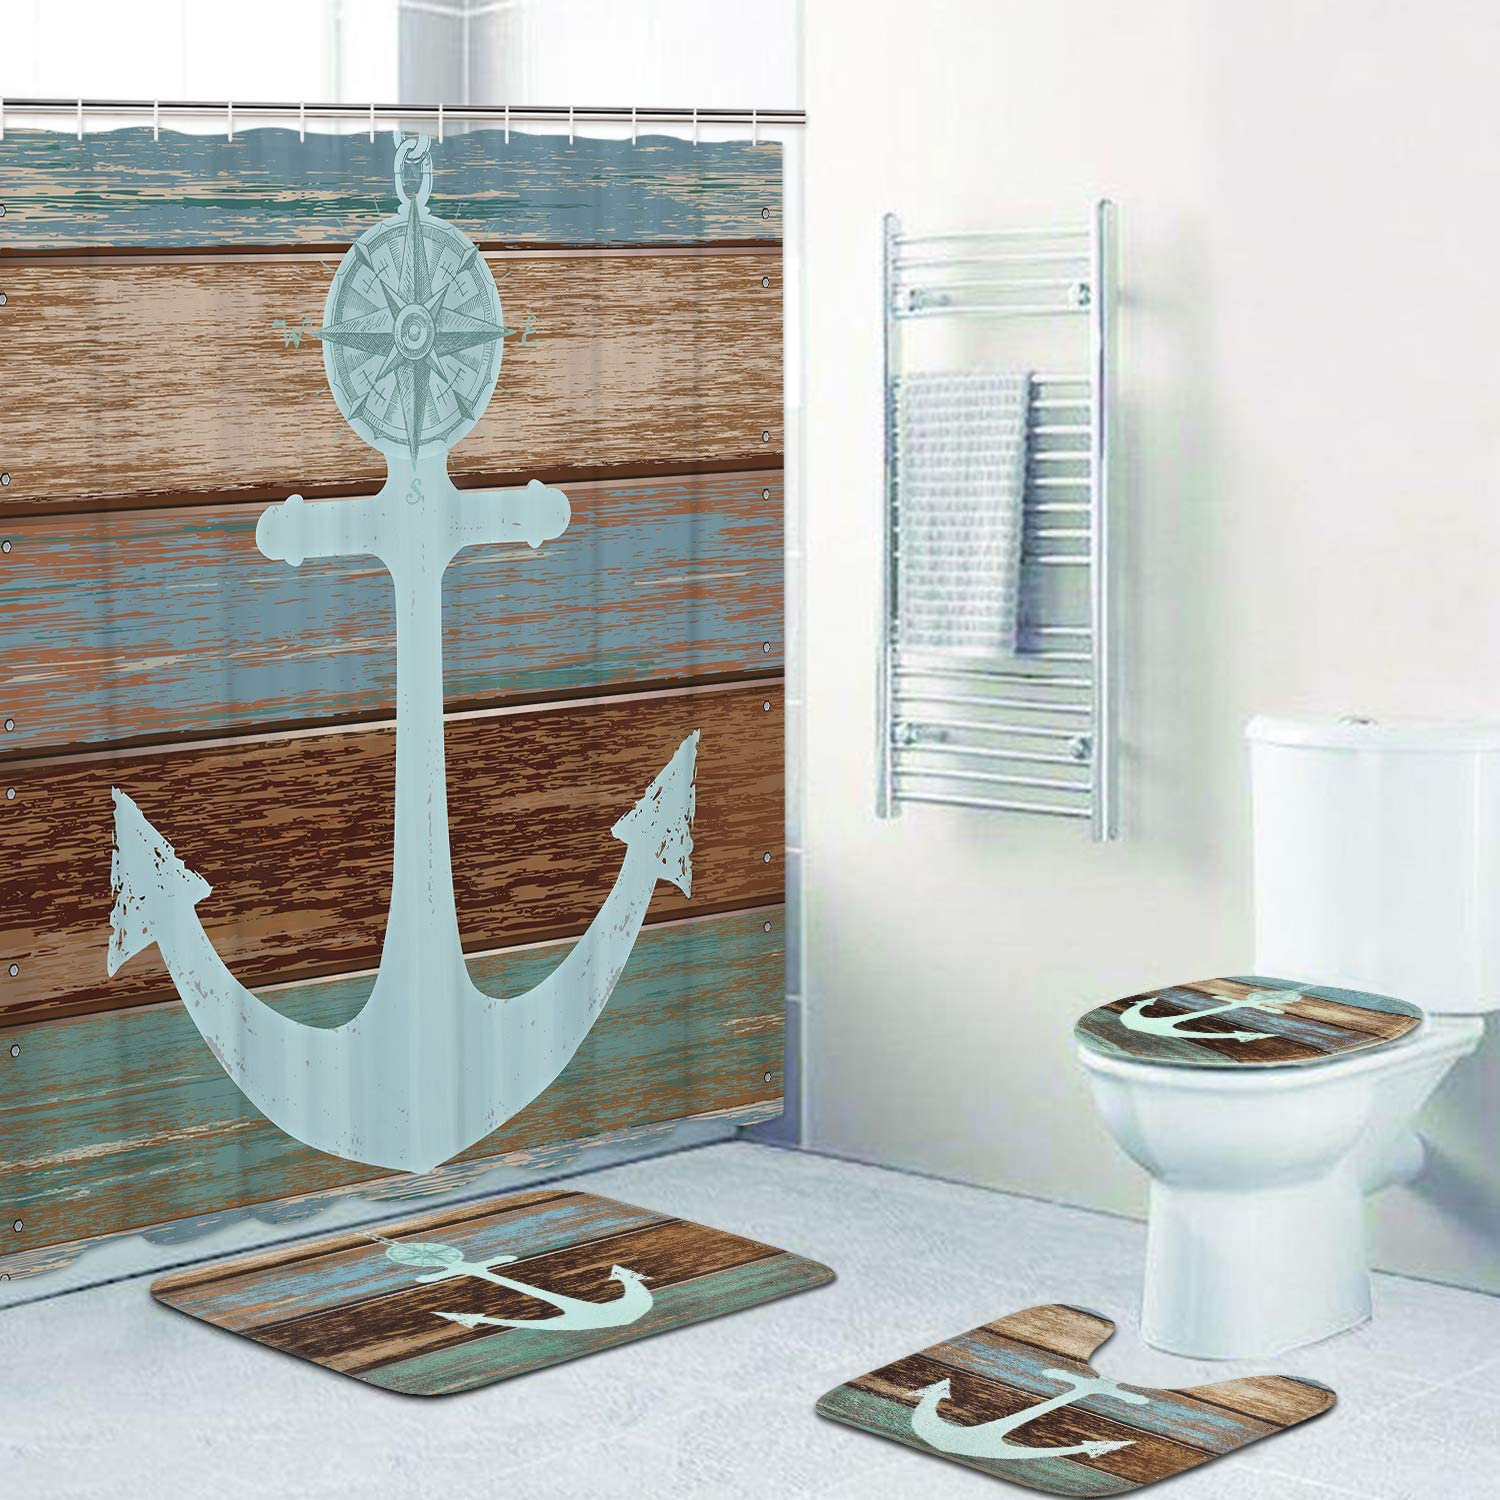 4 Piece Anchor Shower Curtain Sets with Non-Slip Rugs, Toilet Lid Cover and  Bath Mat, Nautical Anchor Rustic Wood Shower Curtain with 4 Hooks,